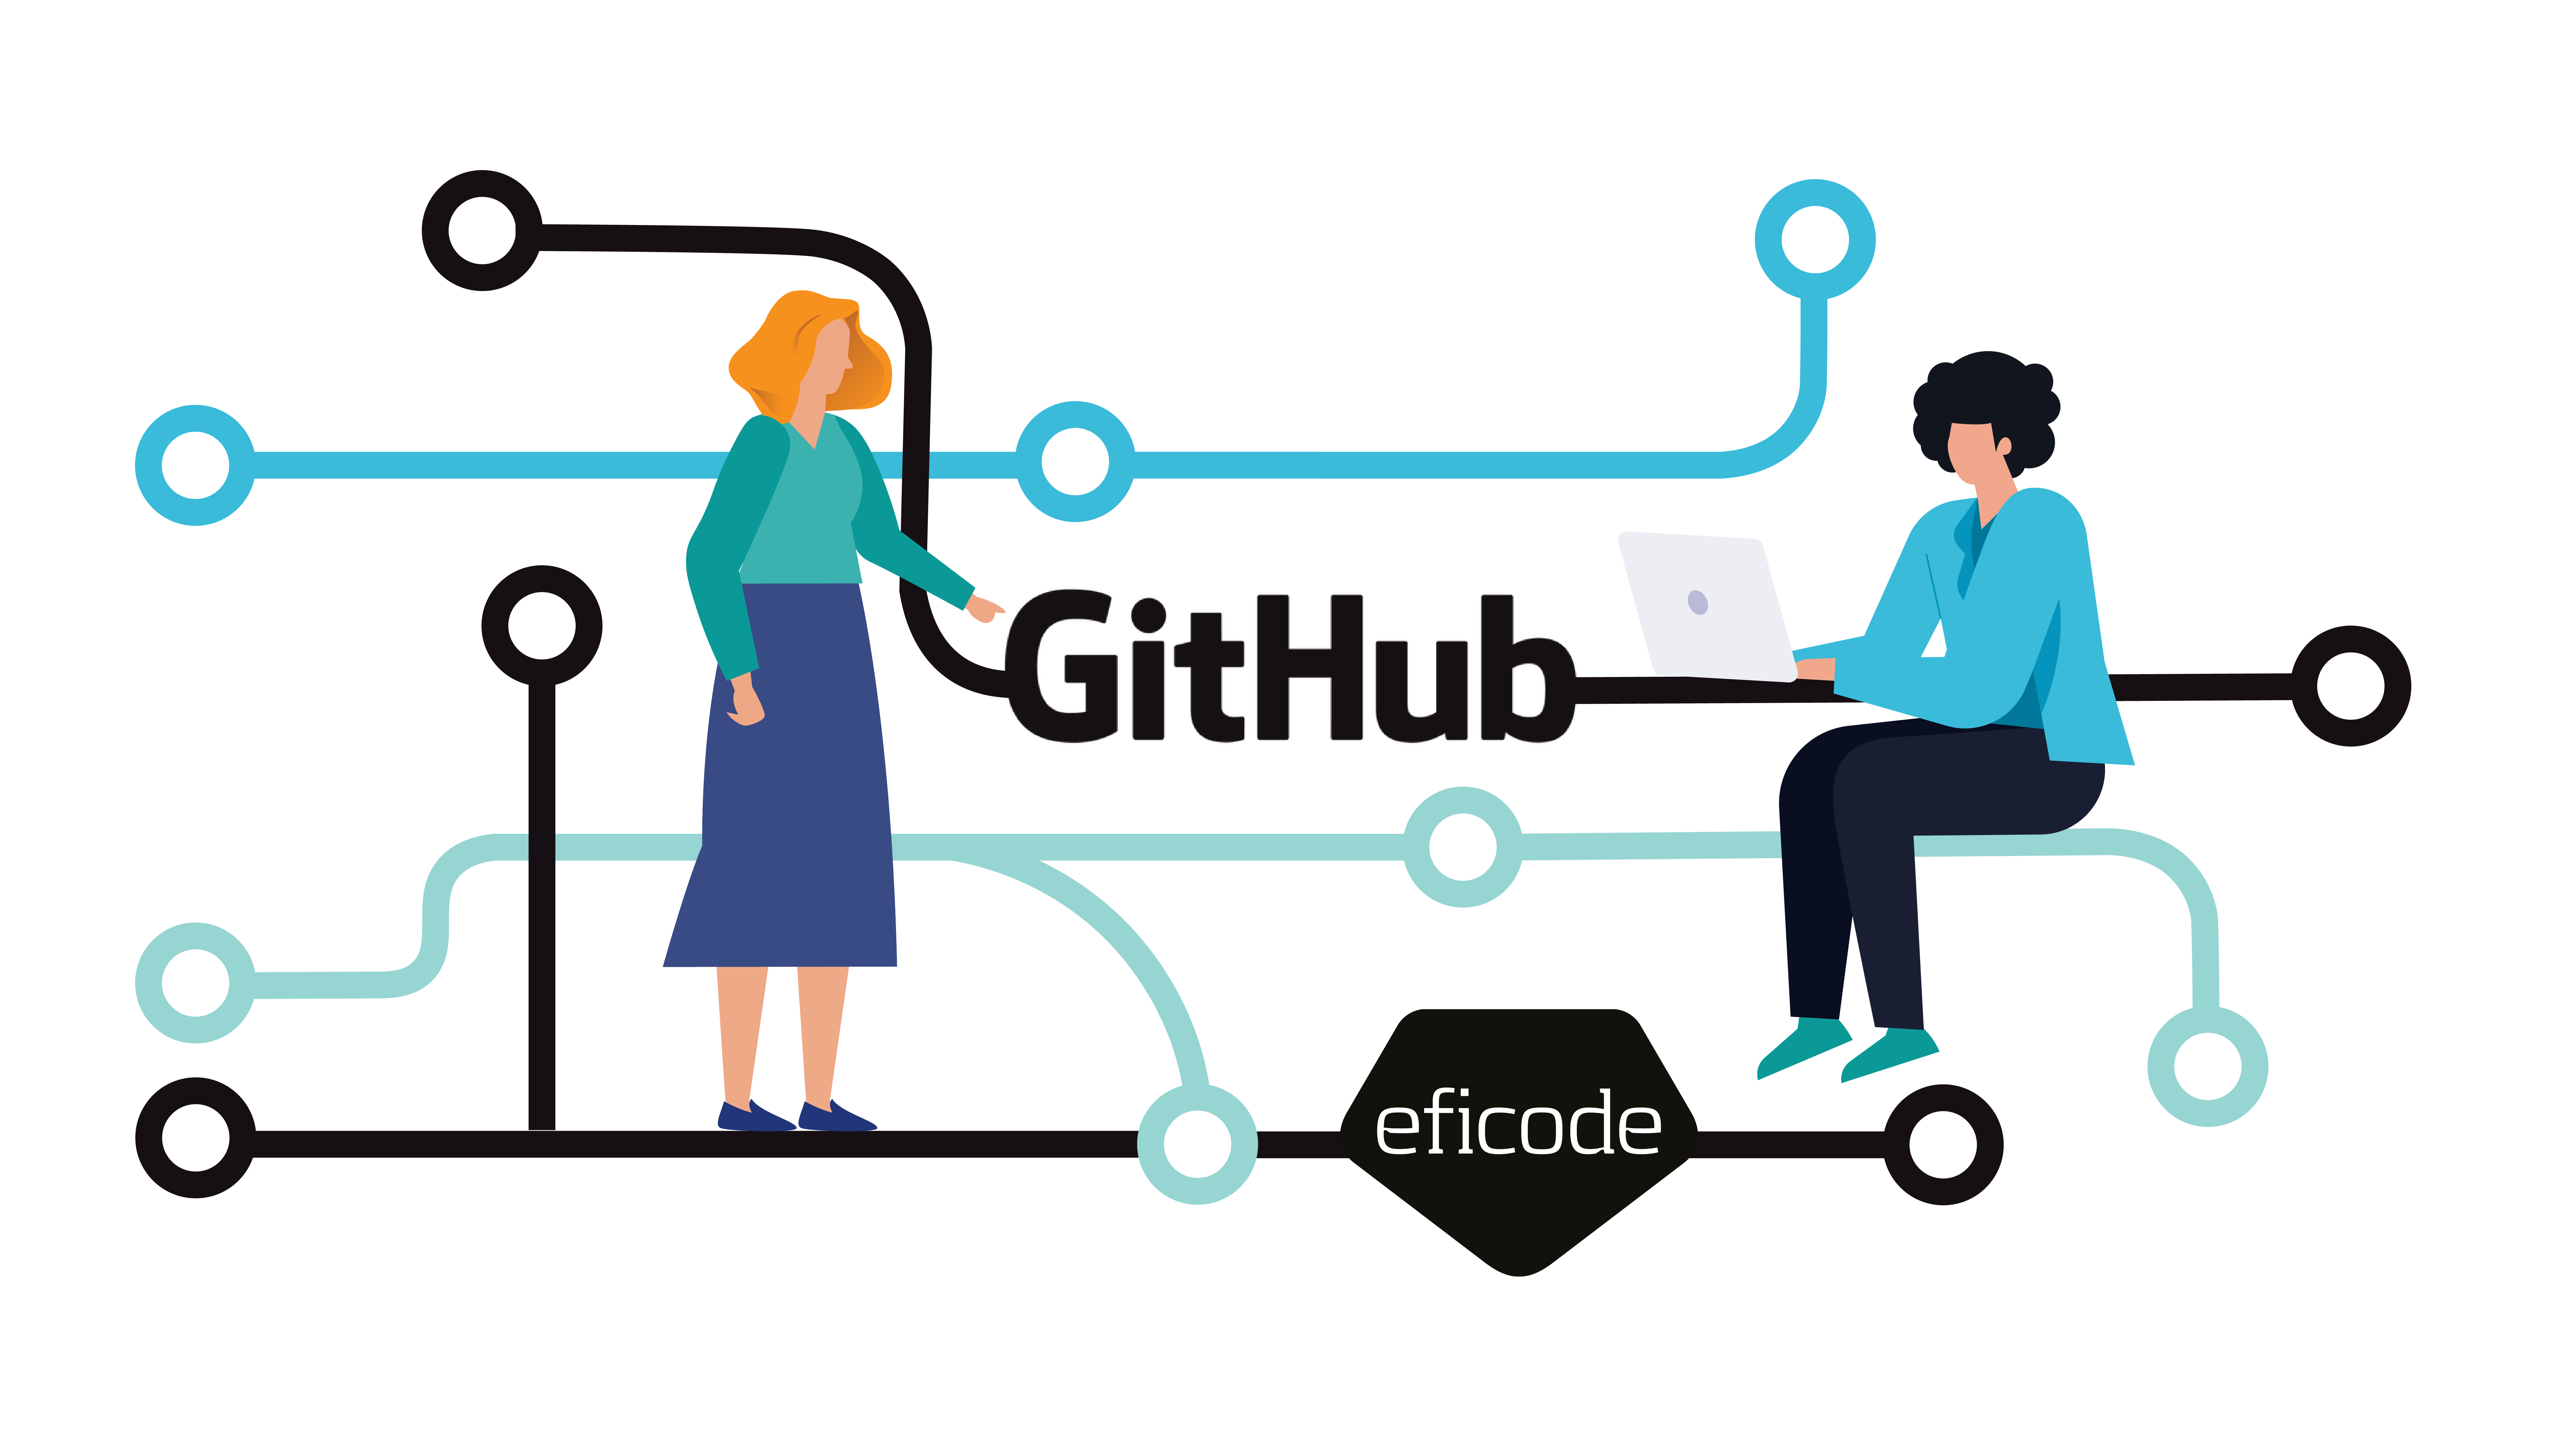 GitHub and Eficode logos connected with pipelines and some people sitting on it